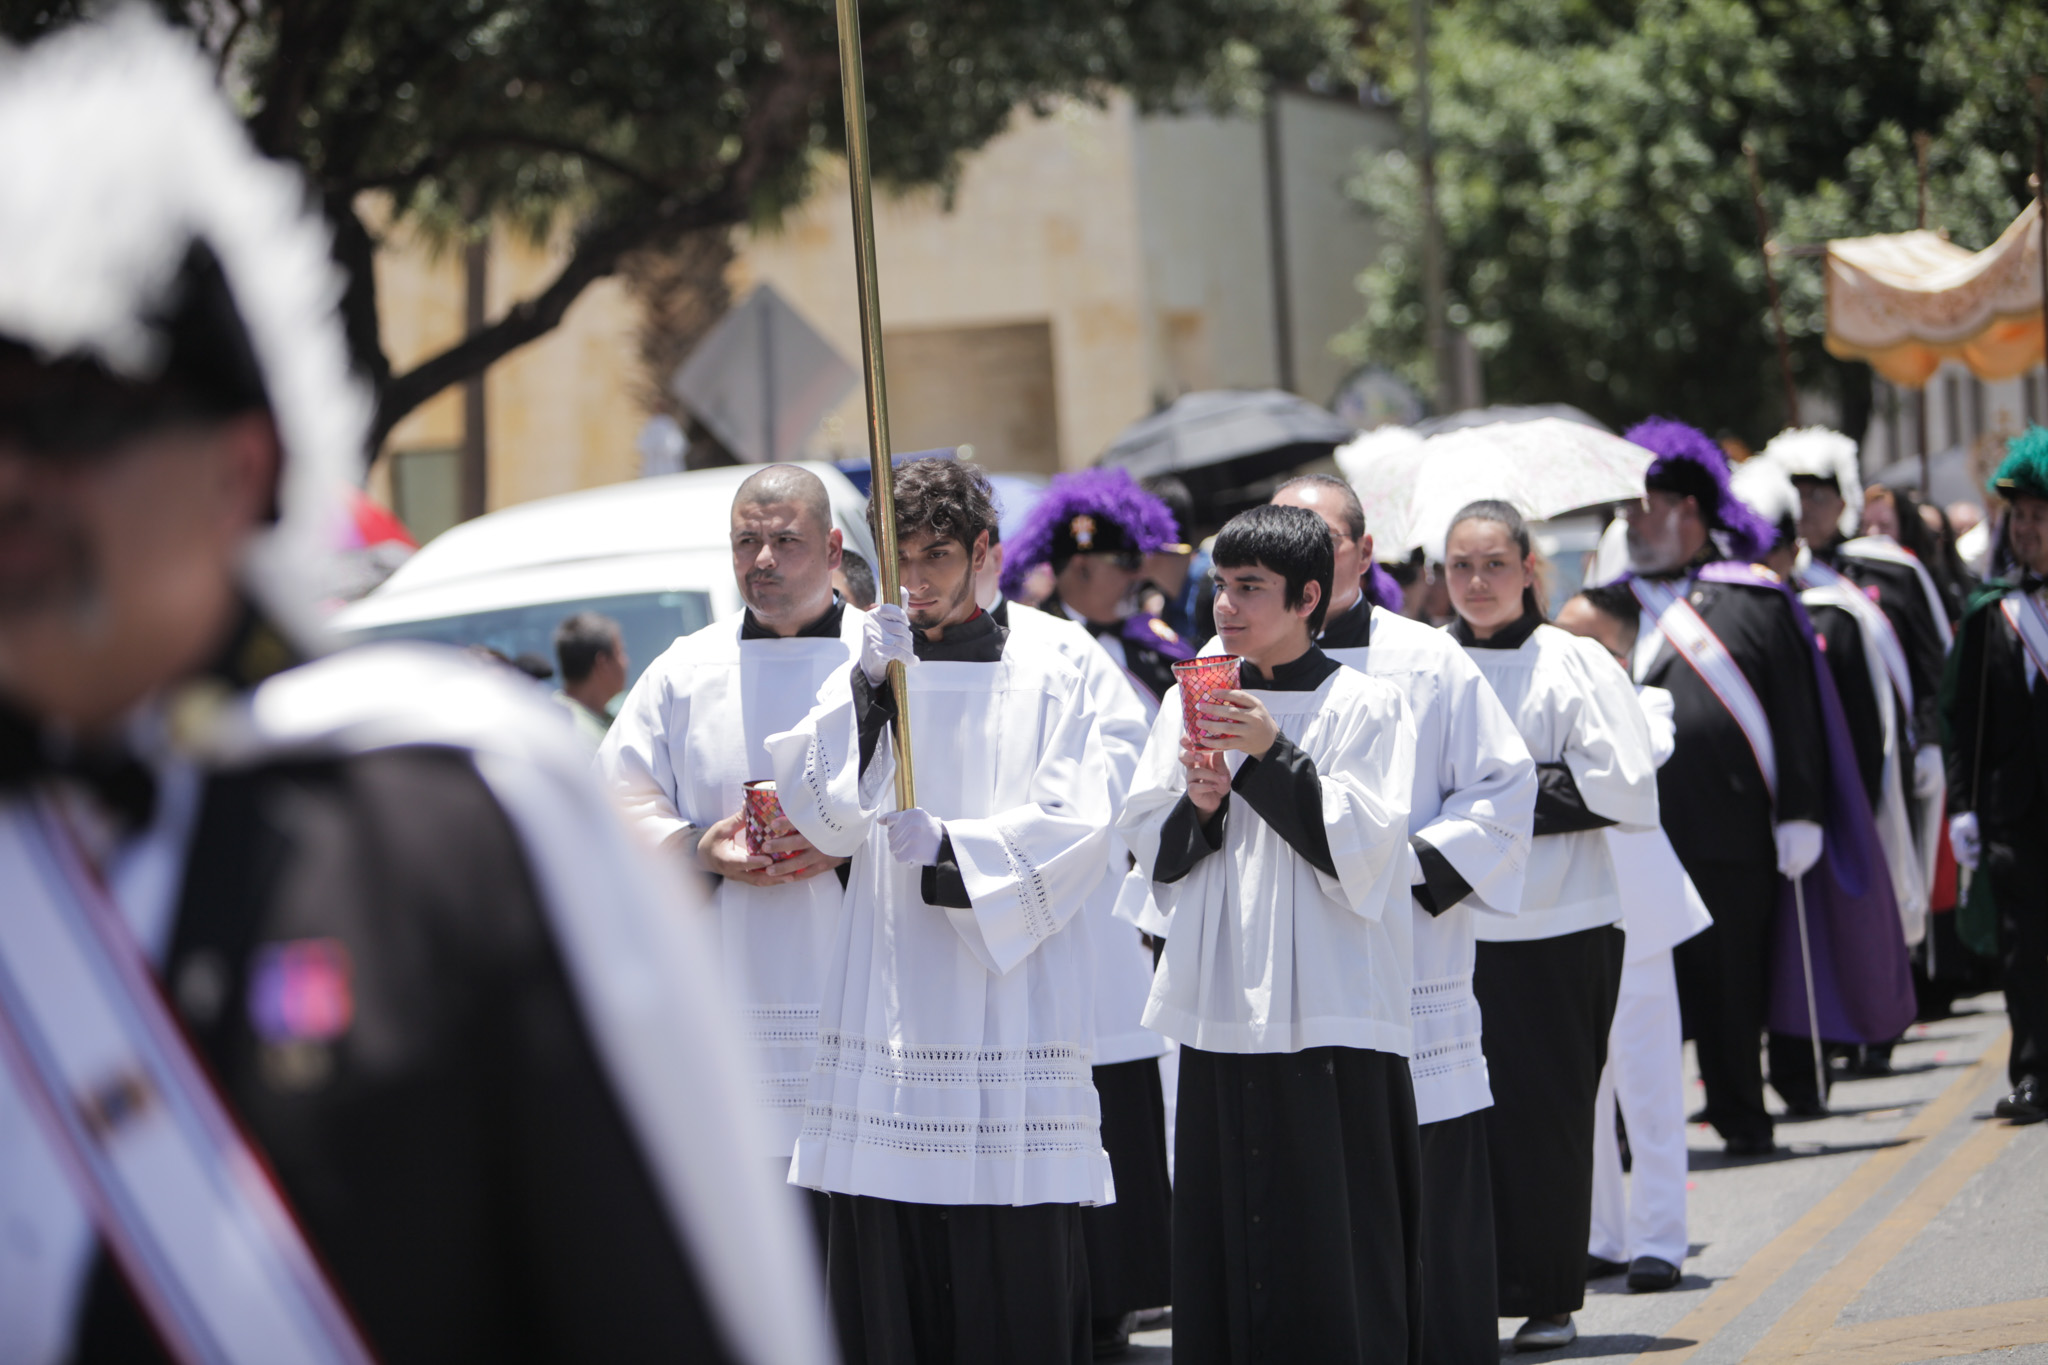 Members of the church hold candles and walk through the streets of downtown San Antonio during the Feast of Corpus Christi Procession.